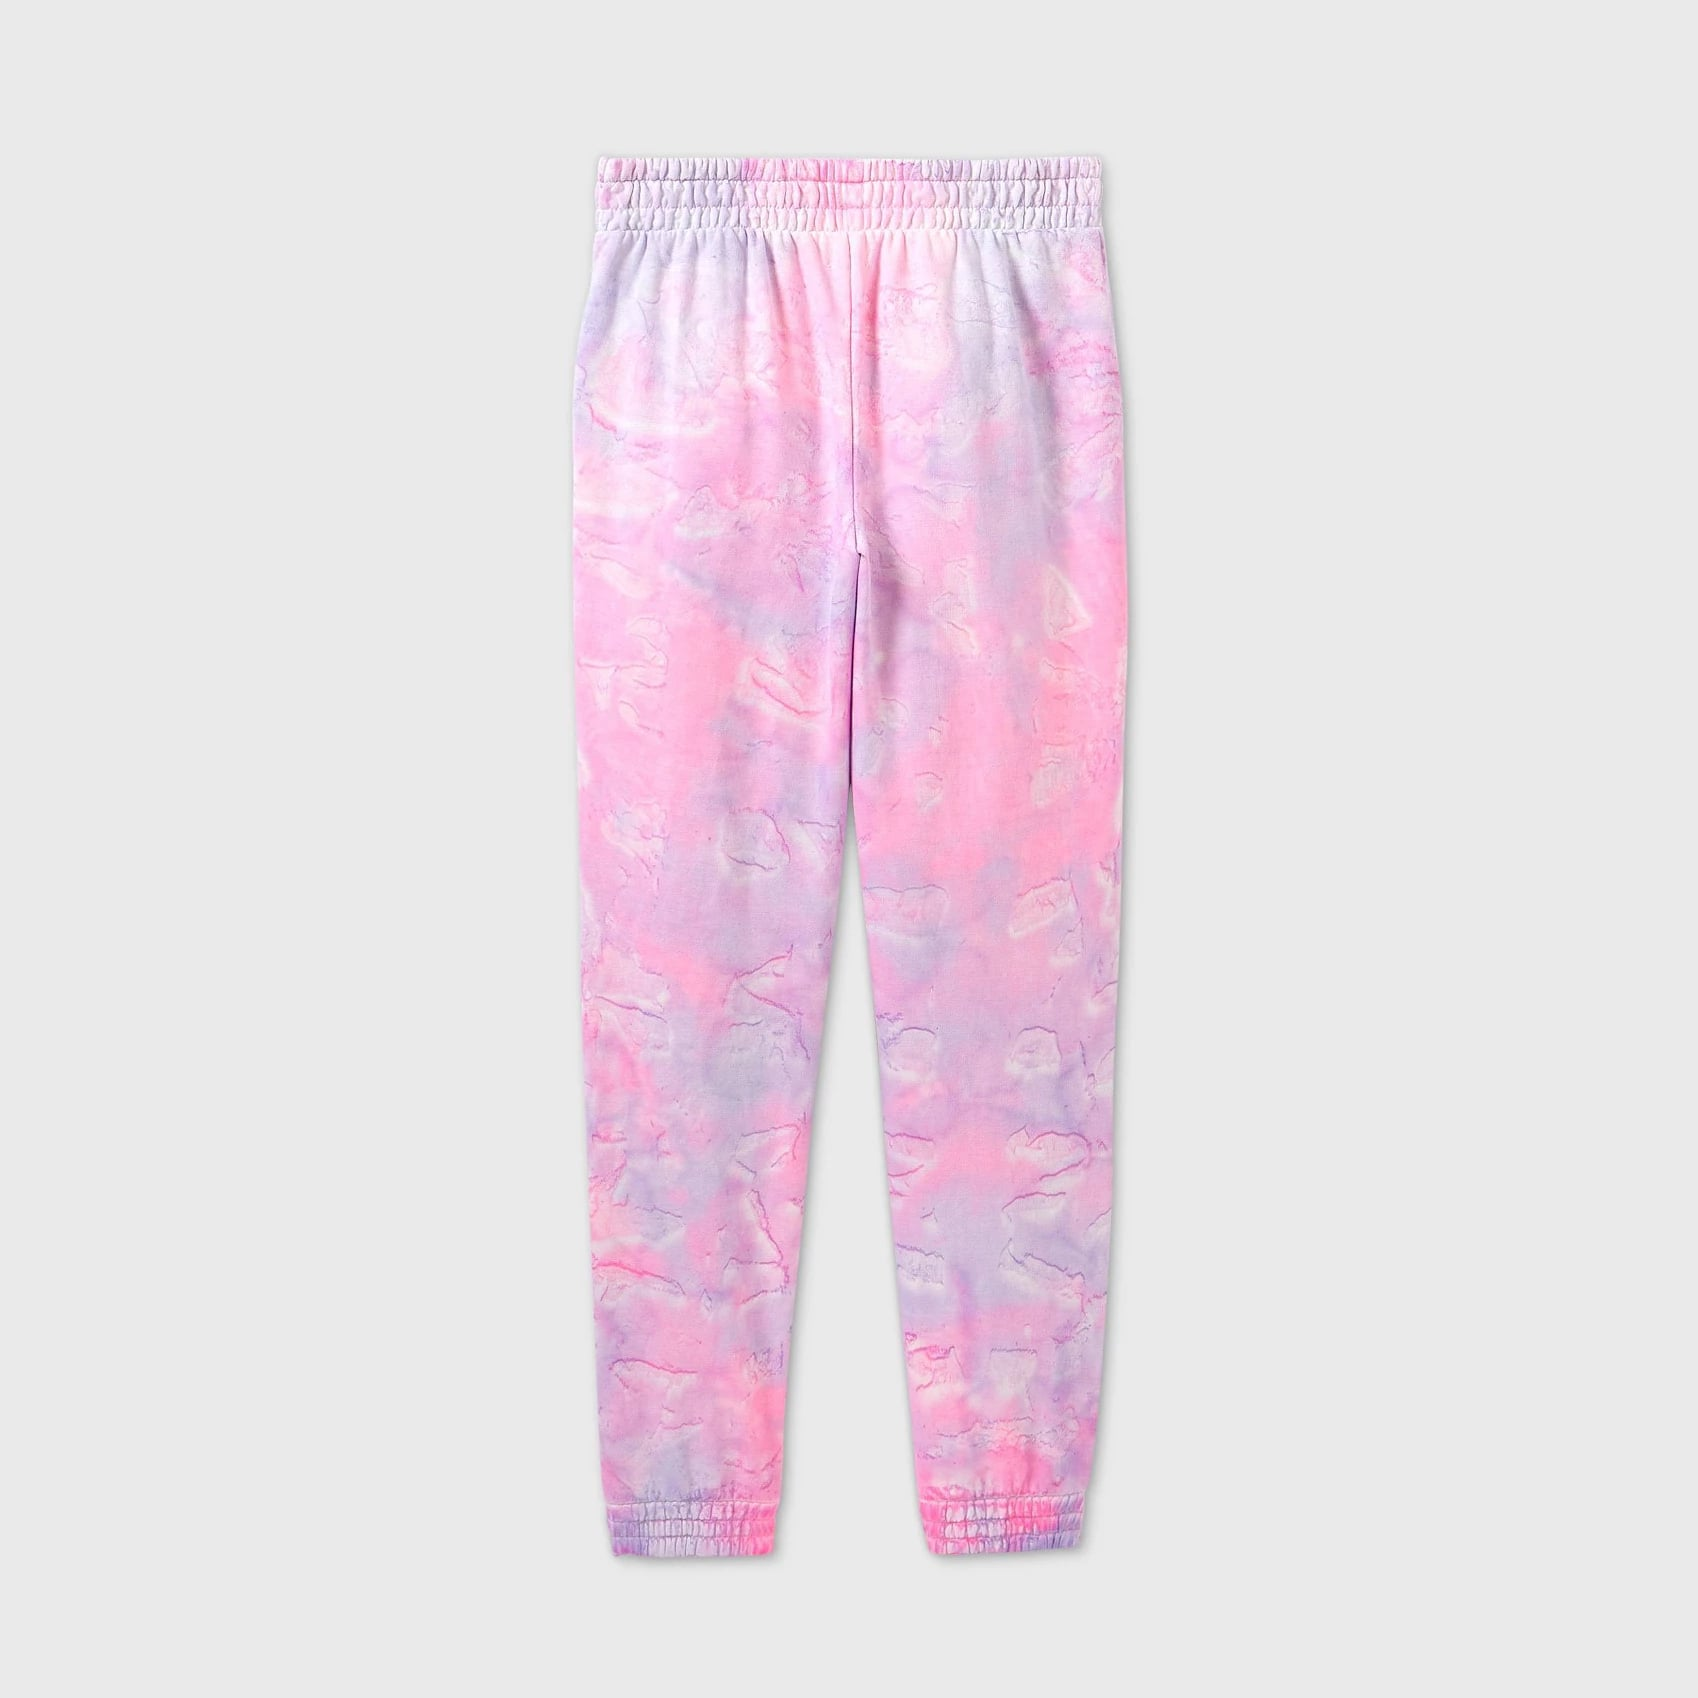 Pink Fluffy Unicorn Costume Pants Roblox The Best Tie Dye Clothing Pieces And Accessories For Tweens Popsugar Family